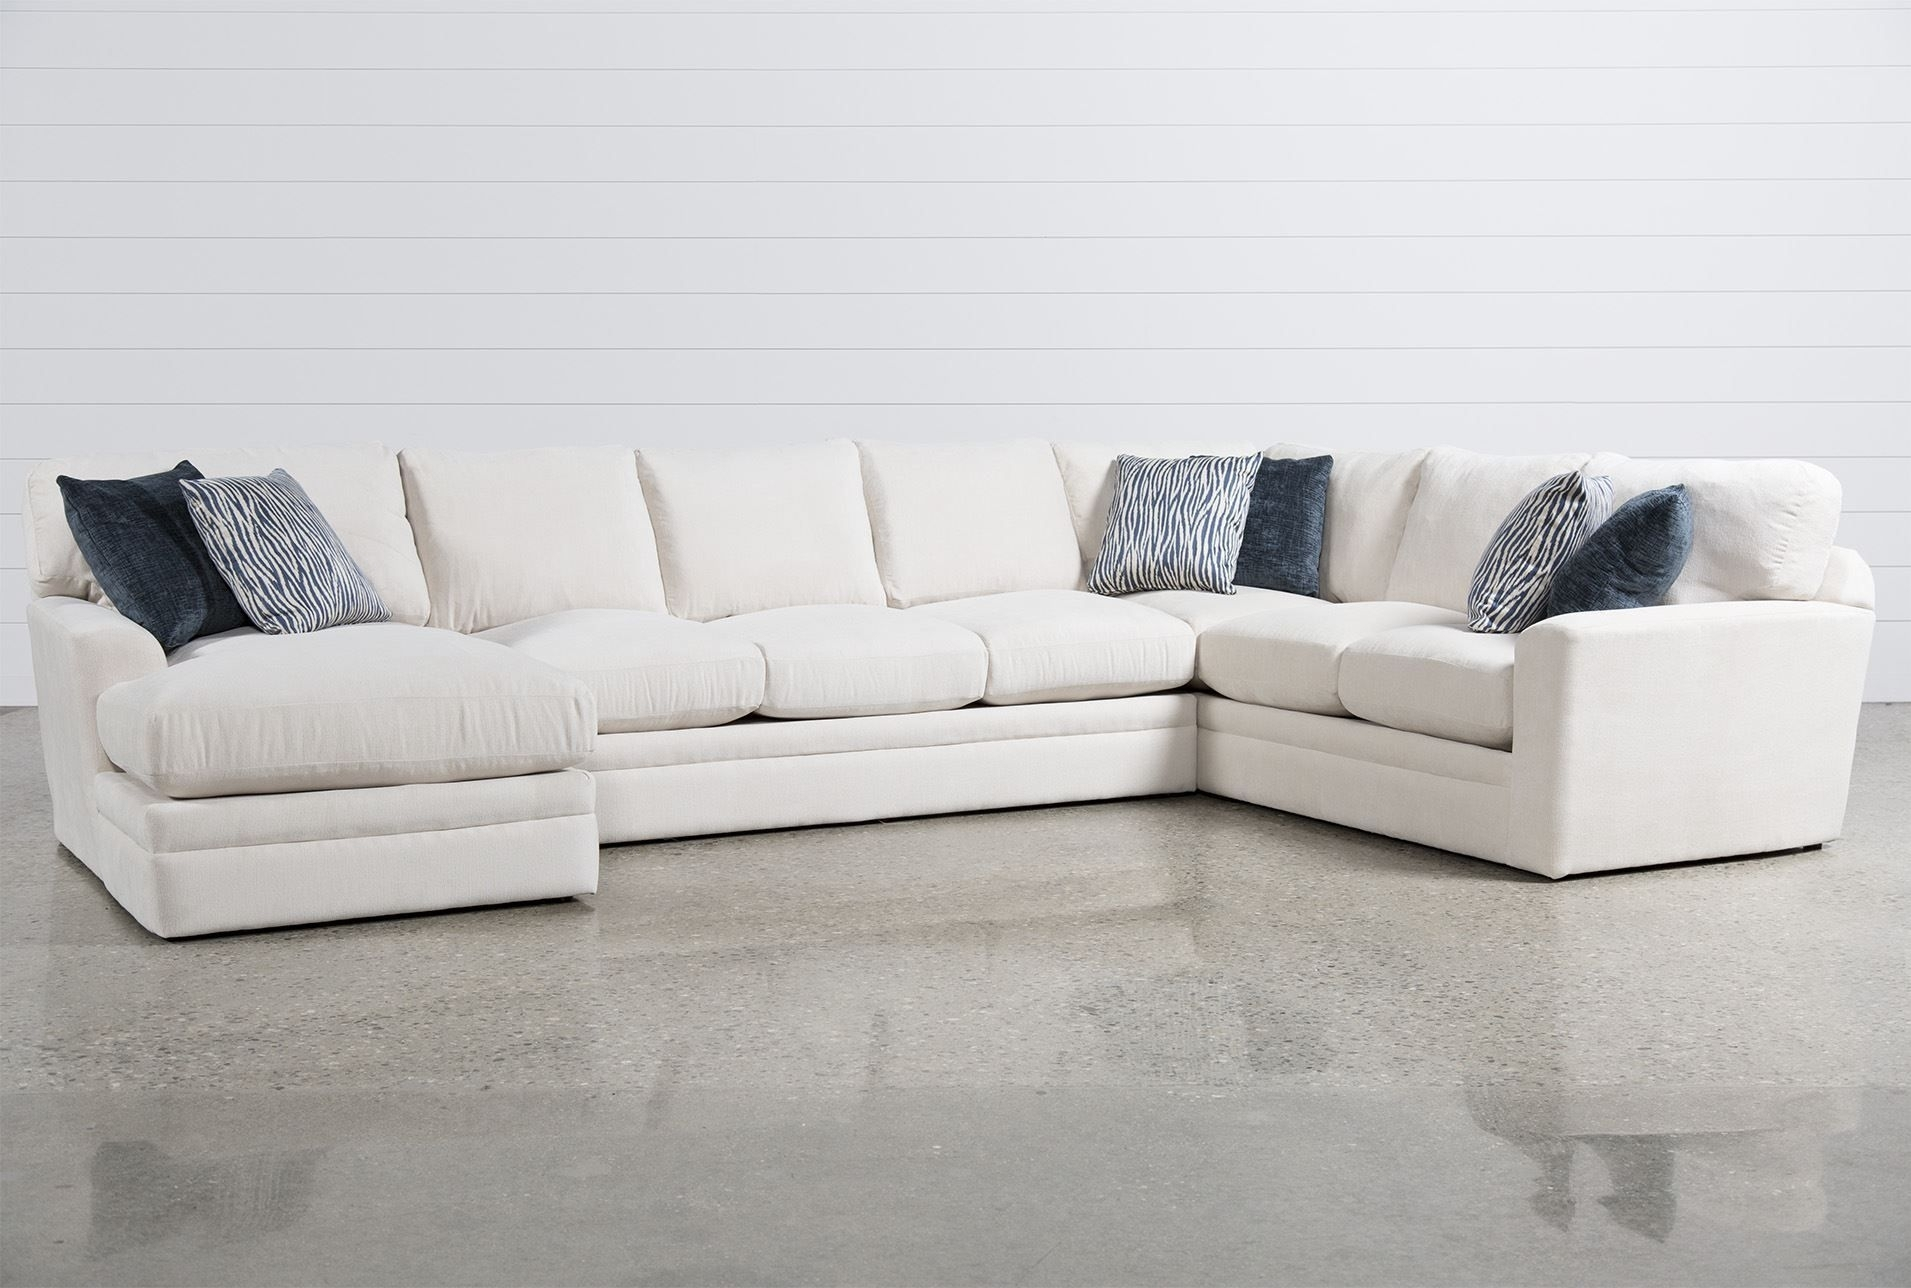 Glamour Ii 3 Piece Sectional | Furniture Options For Roland Beach inside Cohen Down 2 Piece Sectionals (Image 8 of 30)